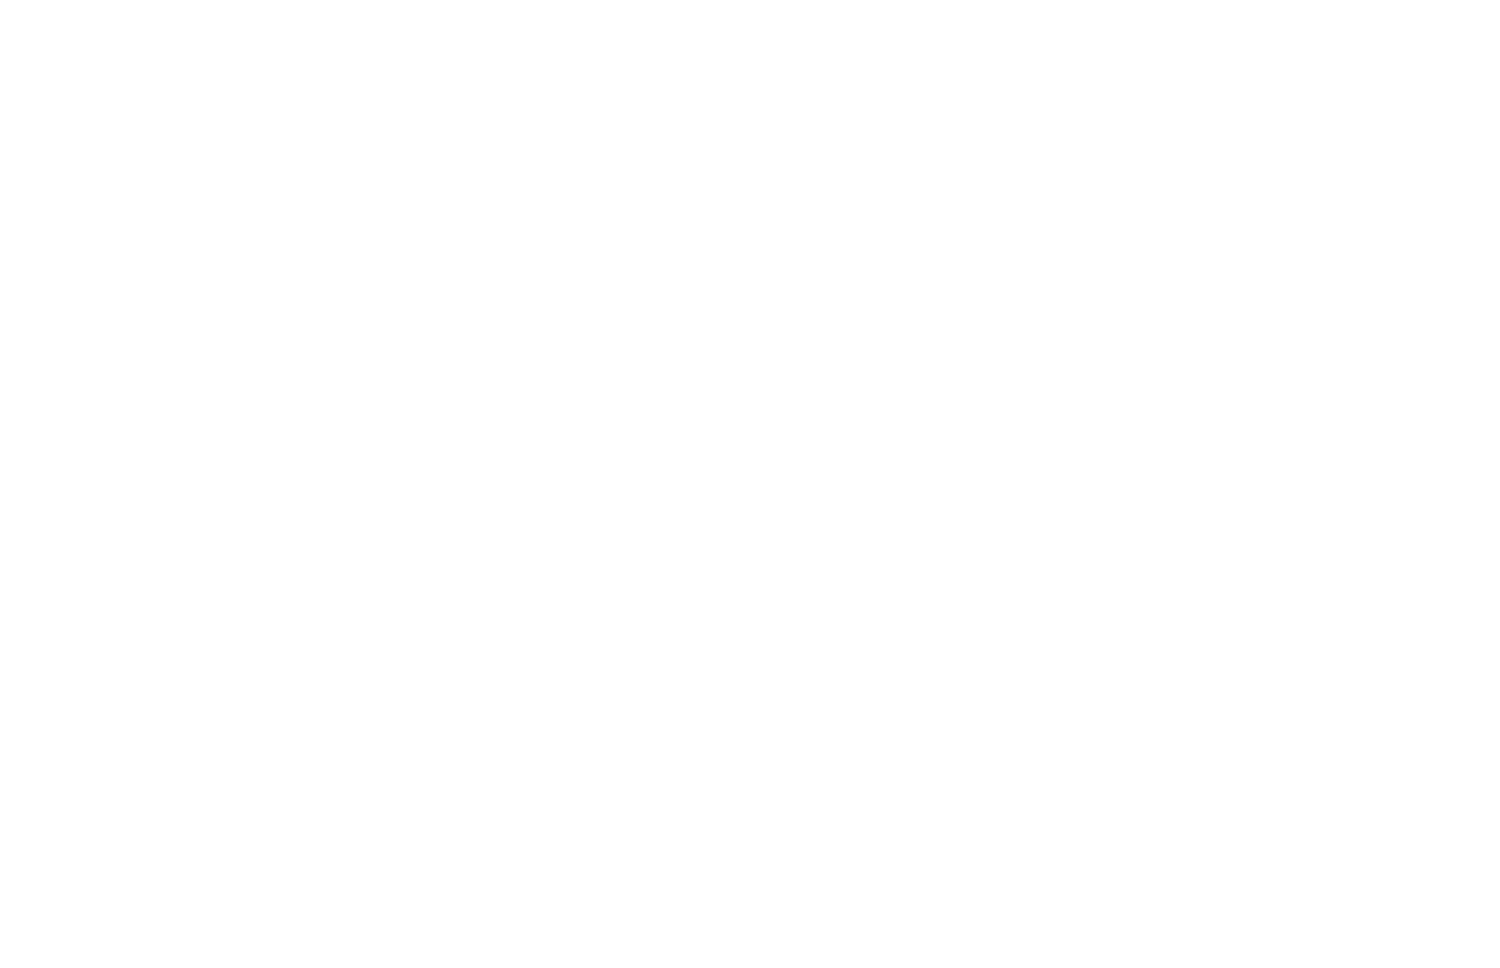 Rivals of Poker